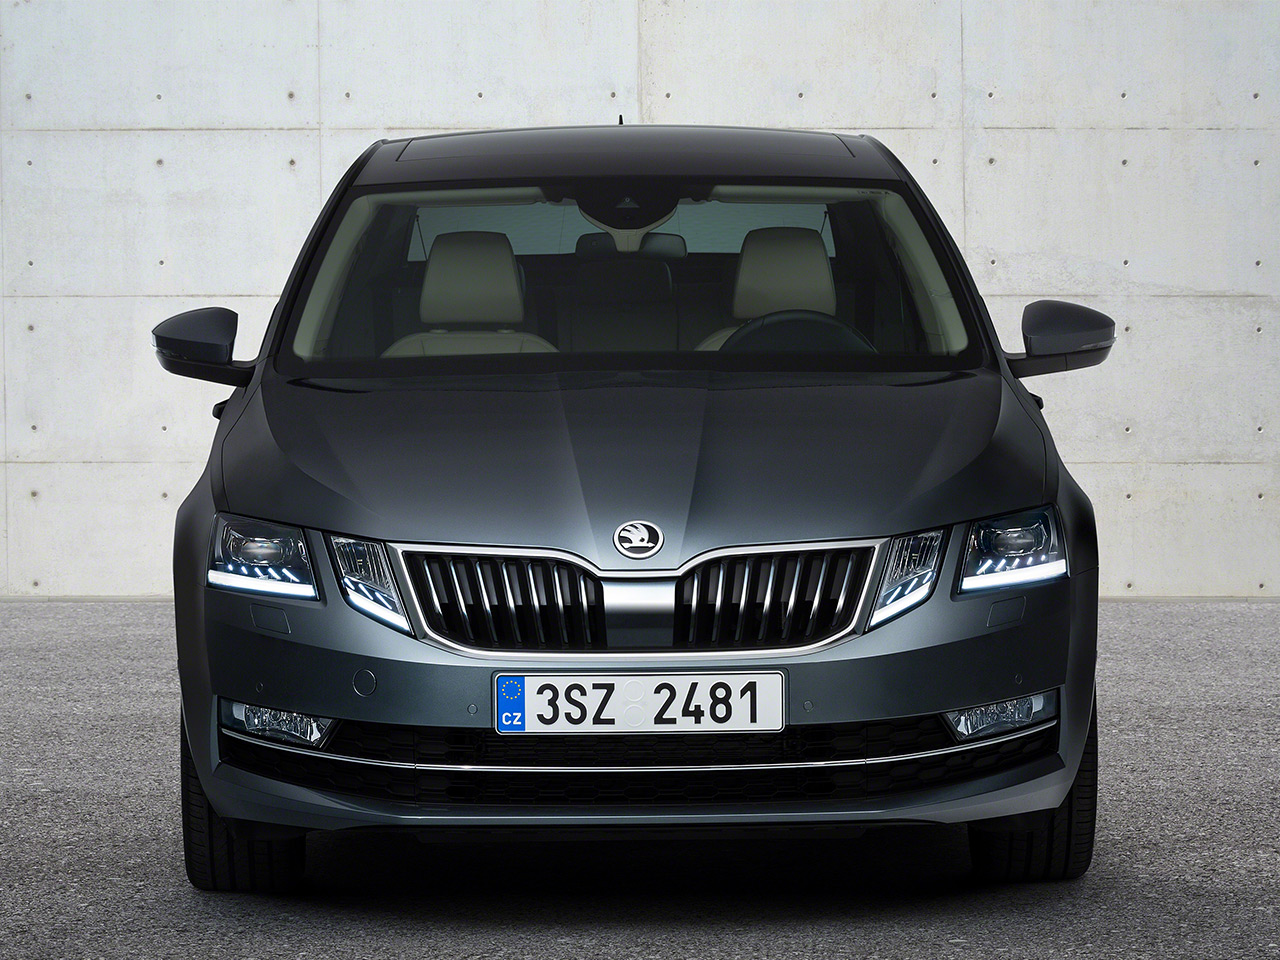 skoda octavia facelift 2017 preis update. Black Bedroom Furniture Sets. Home Design Ideas